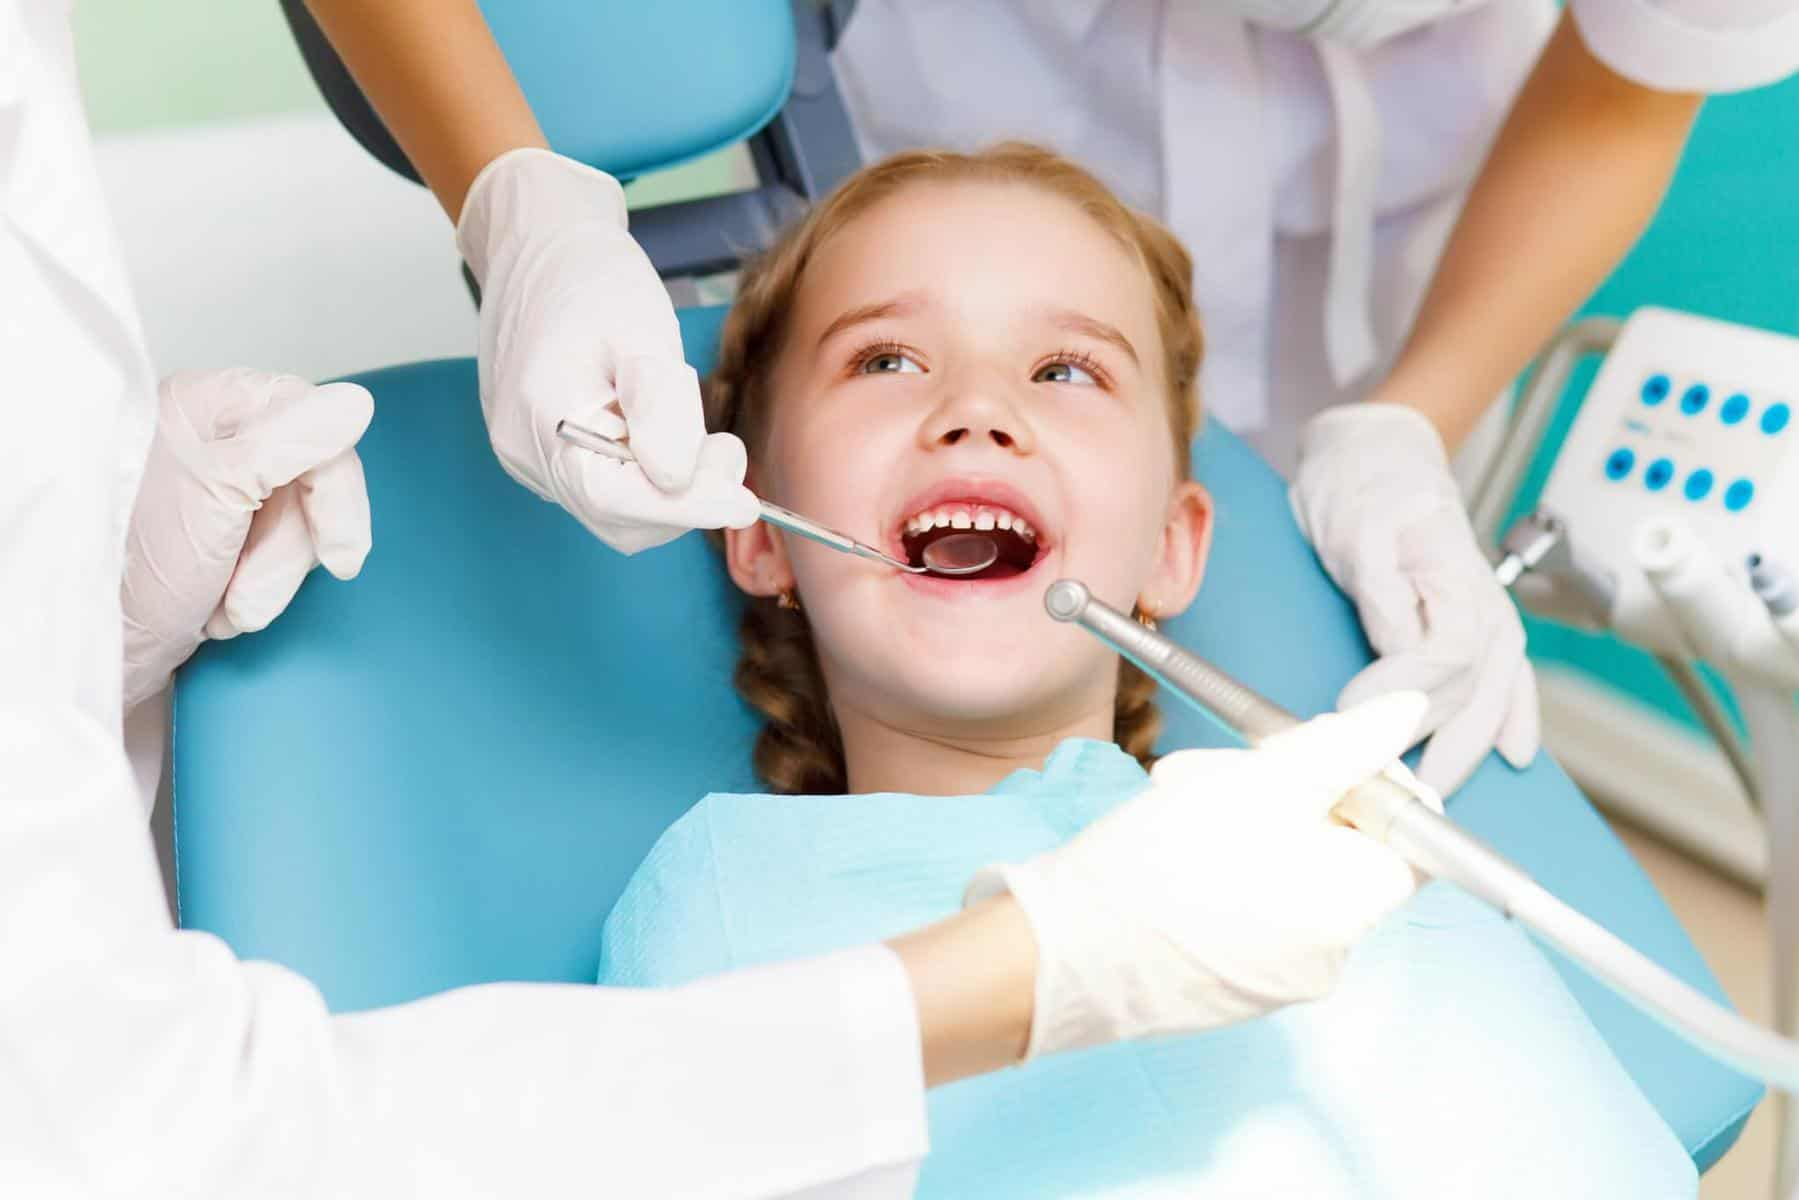 Indicators That You May Be In Need Of A Cosmetic Dentist